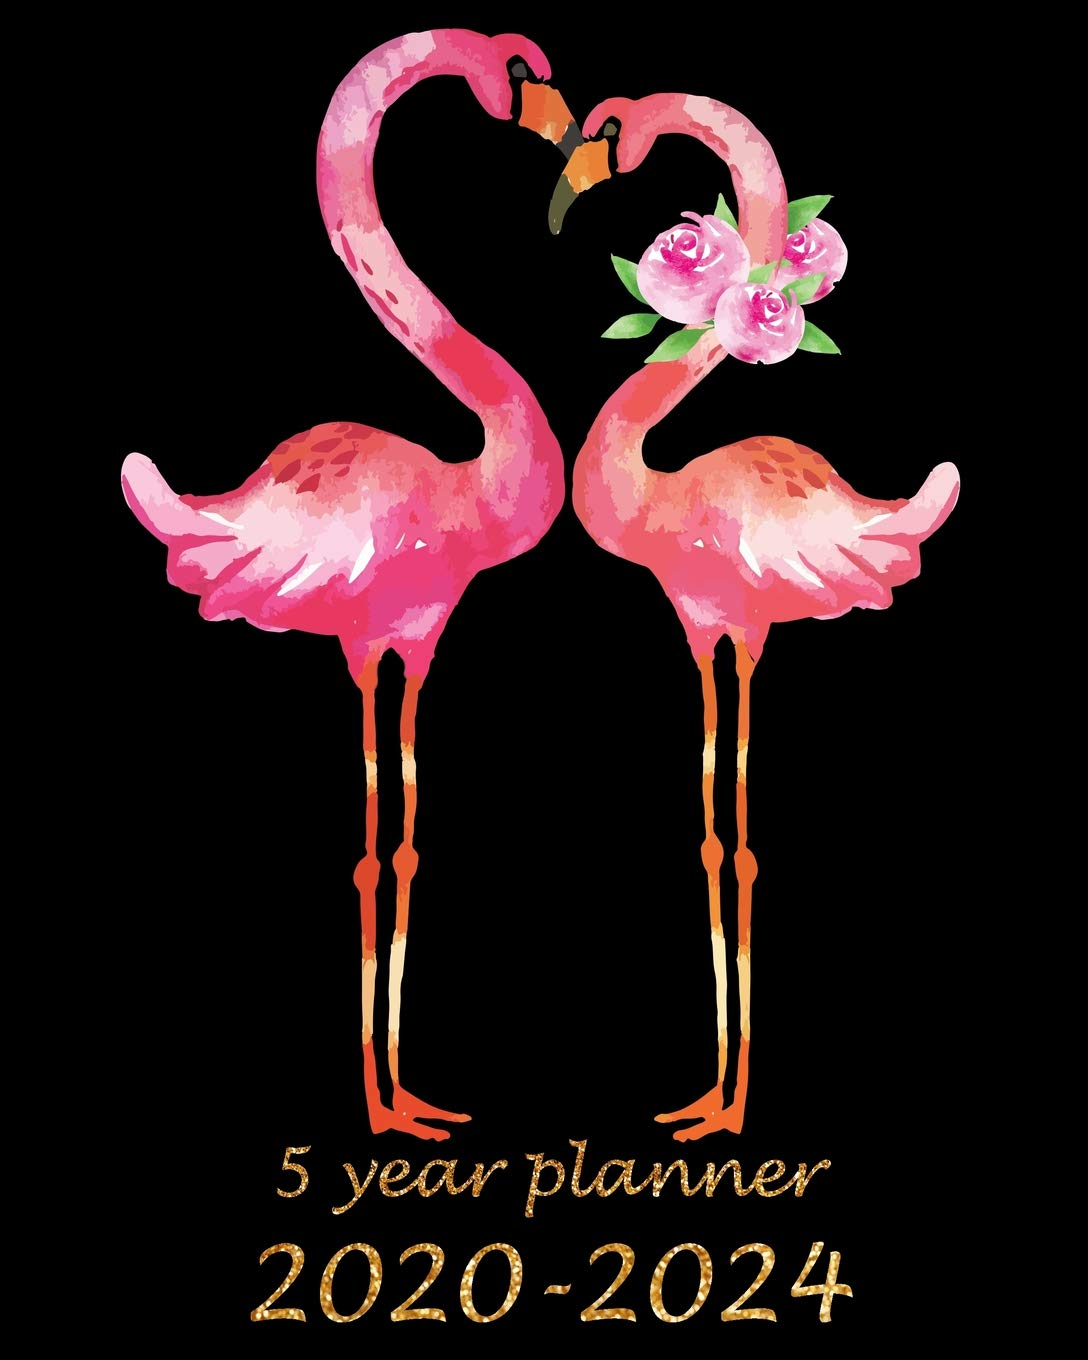 5 Year Planner 2020 2024: Pink Flamingo Monthly Calendar Schedule Organizer (60 Months) For The Next Five Years With Holid...